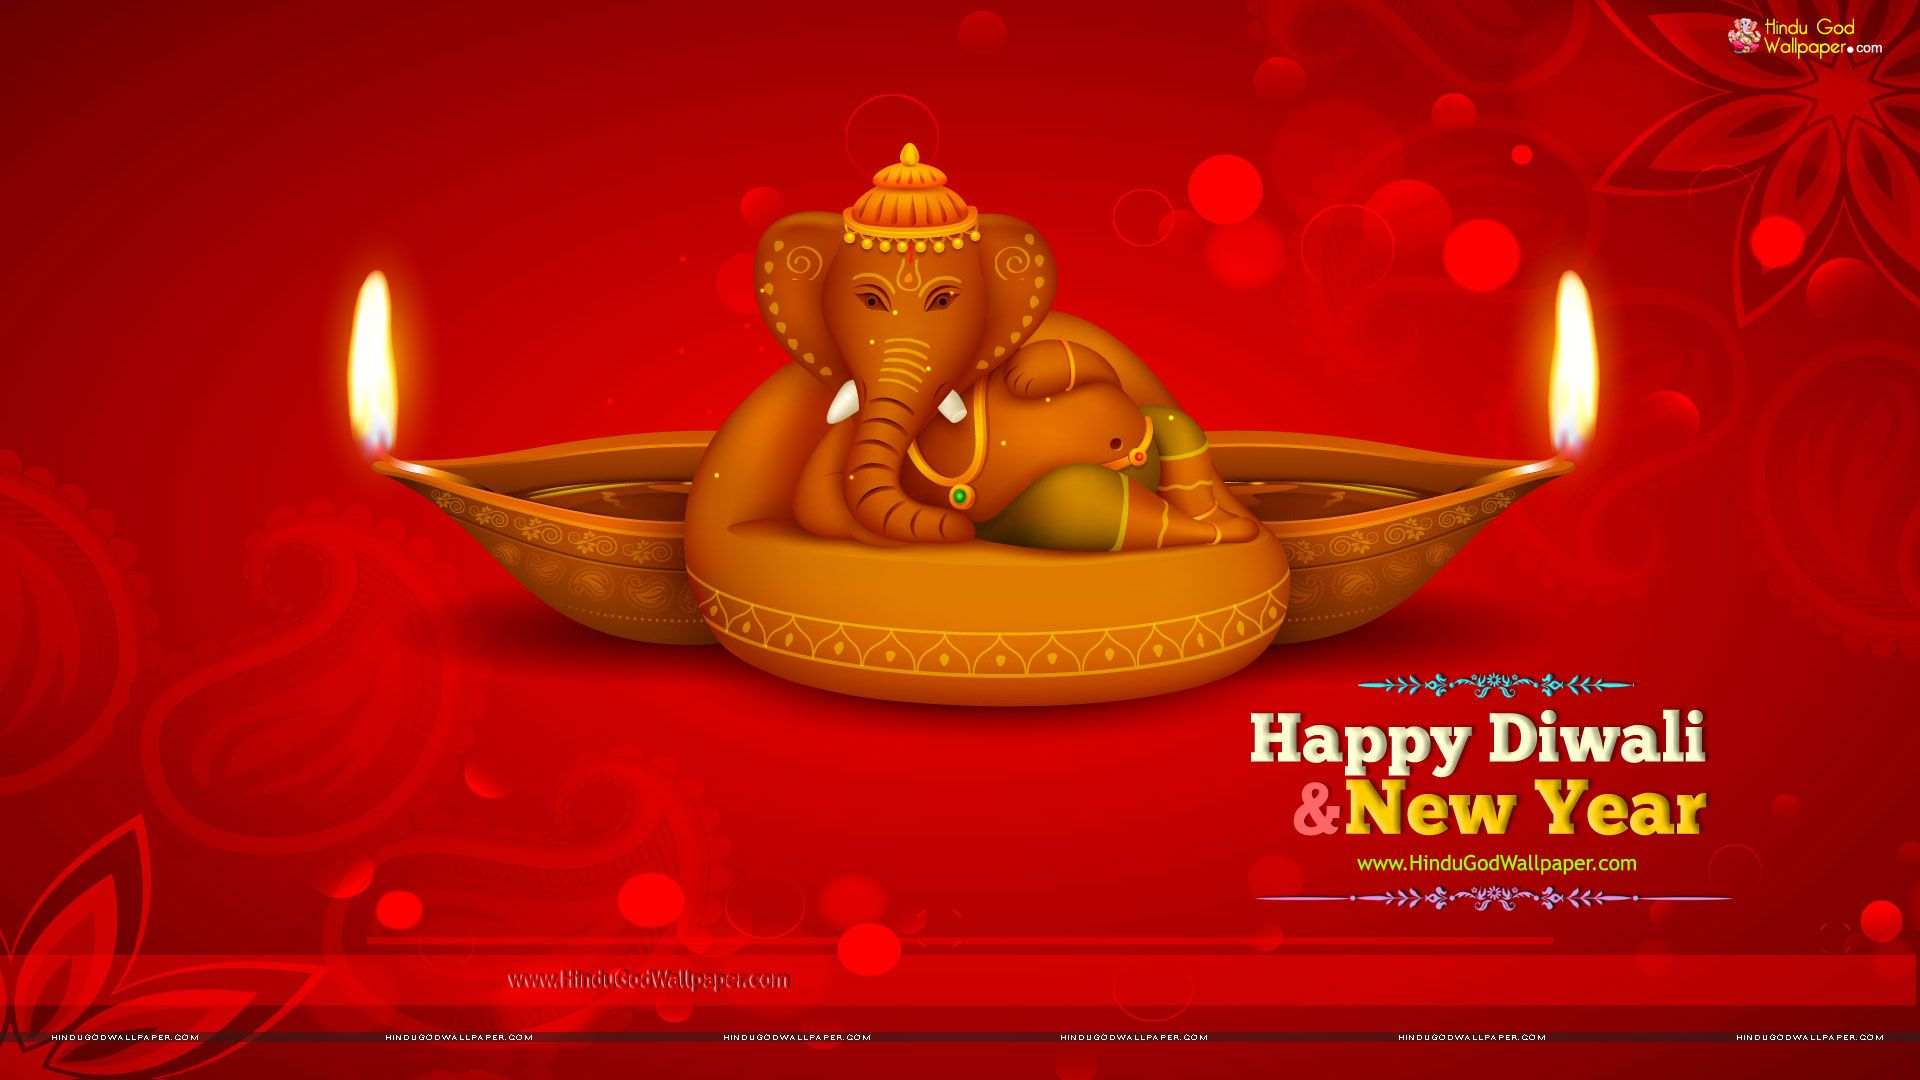 diwali new year wallpaper hd free download